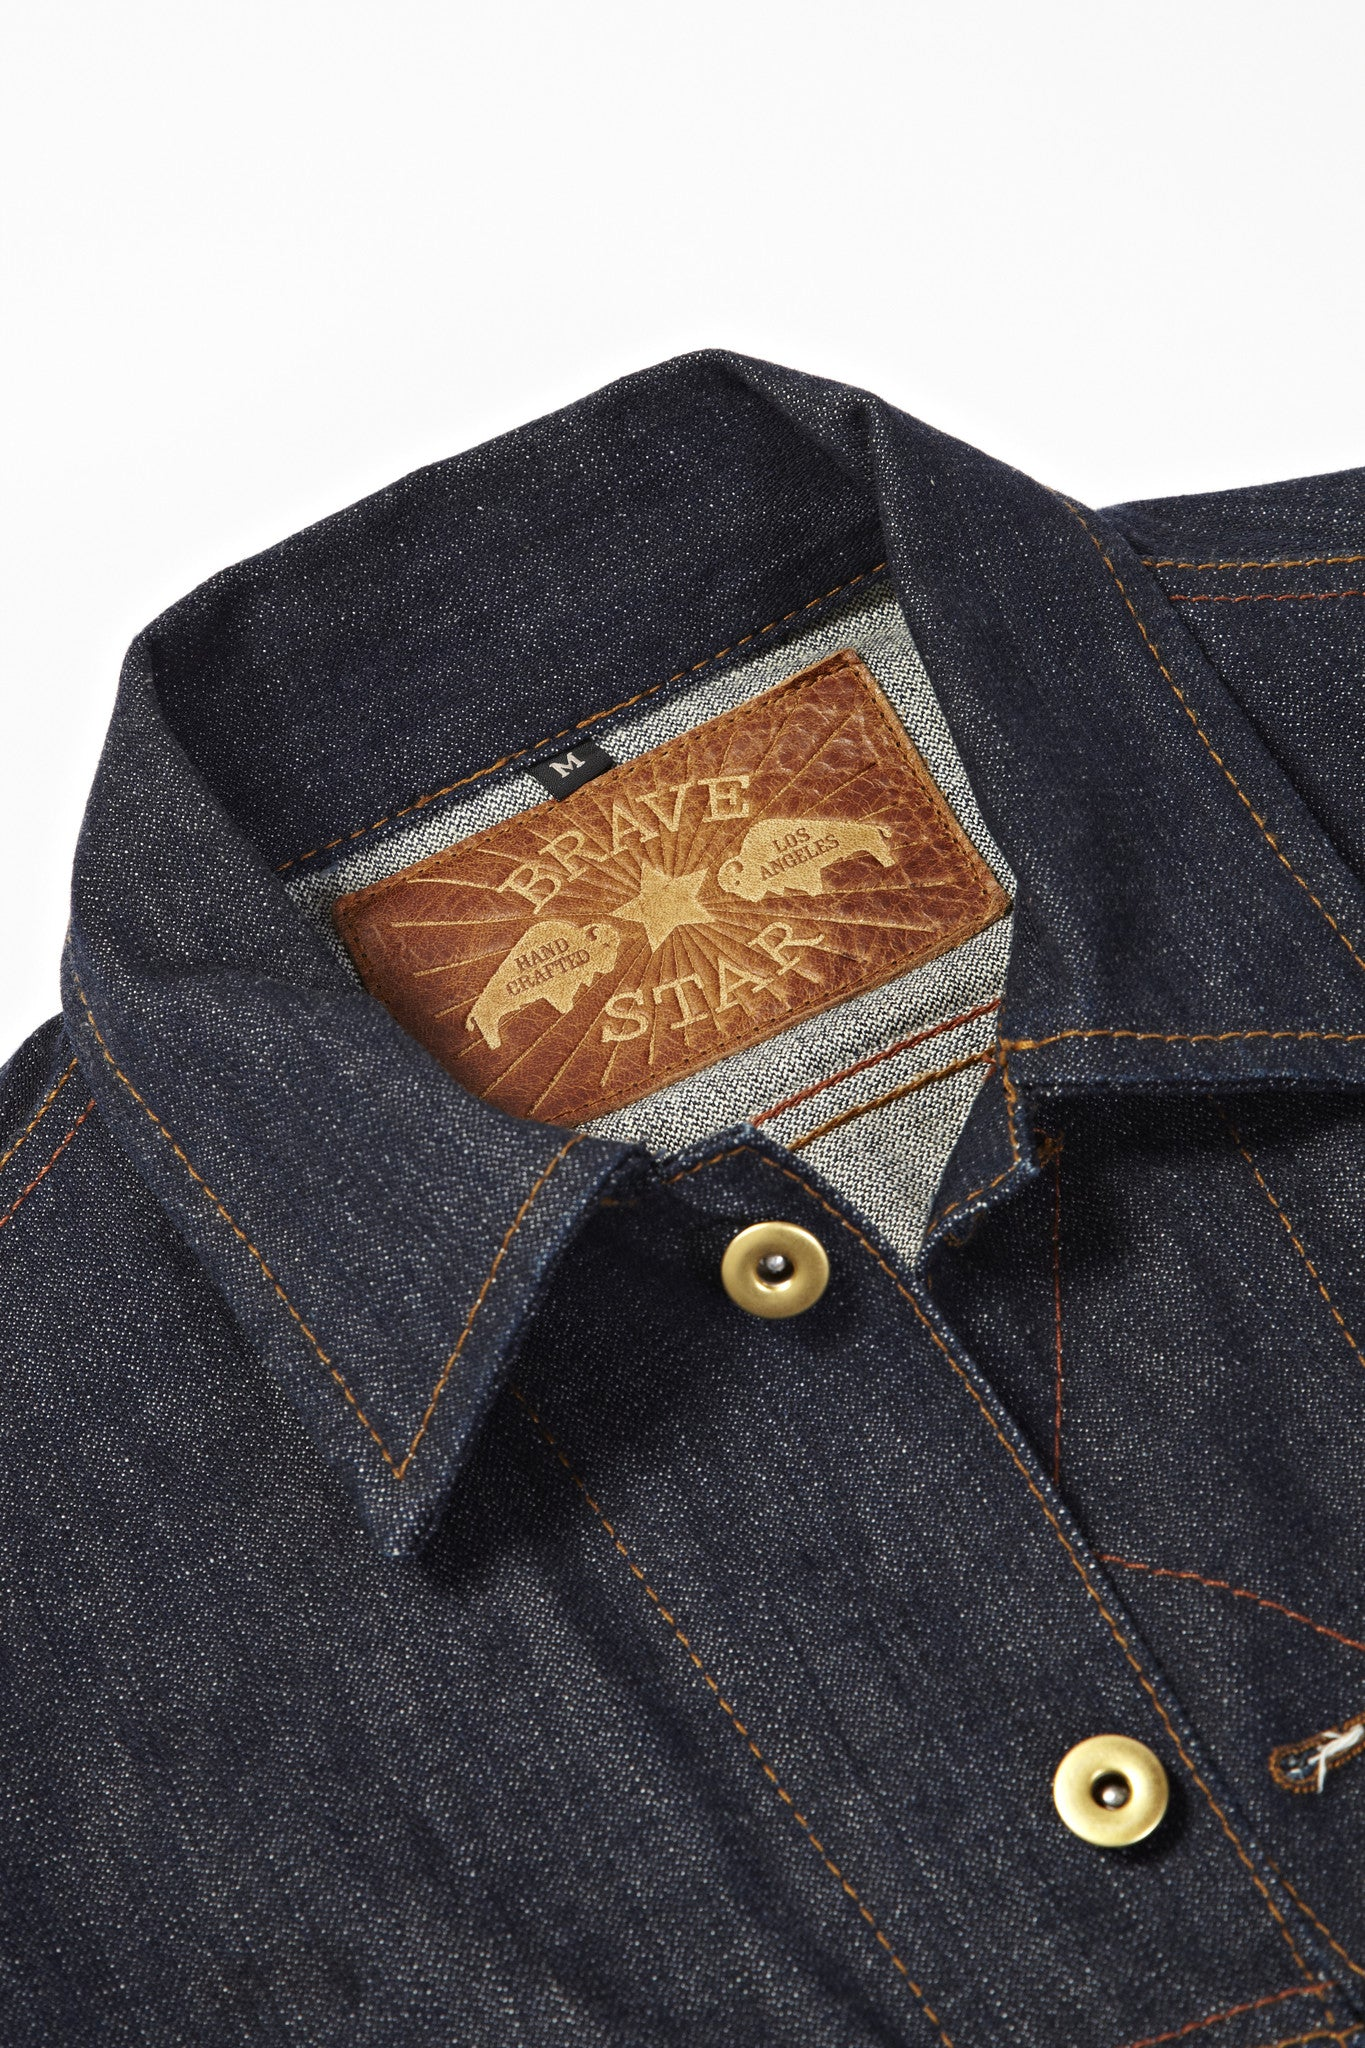 BSDJ100 SELVAGE DENIM JACKET CONE MILLS SELVEDGE FRONT VIEW COW HIDE LEATHER PATCH